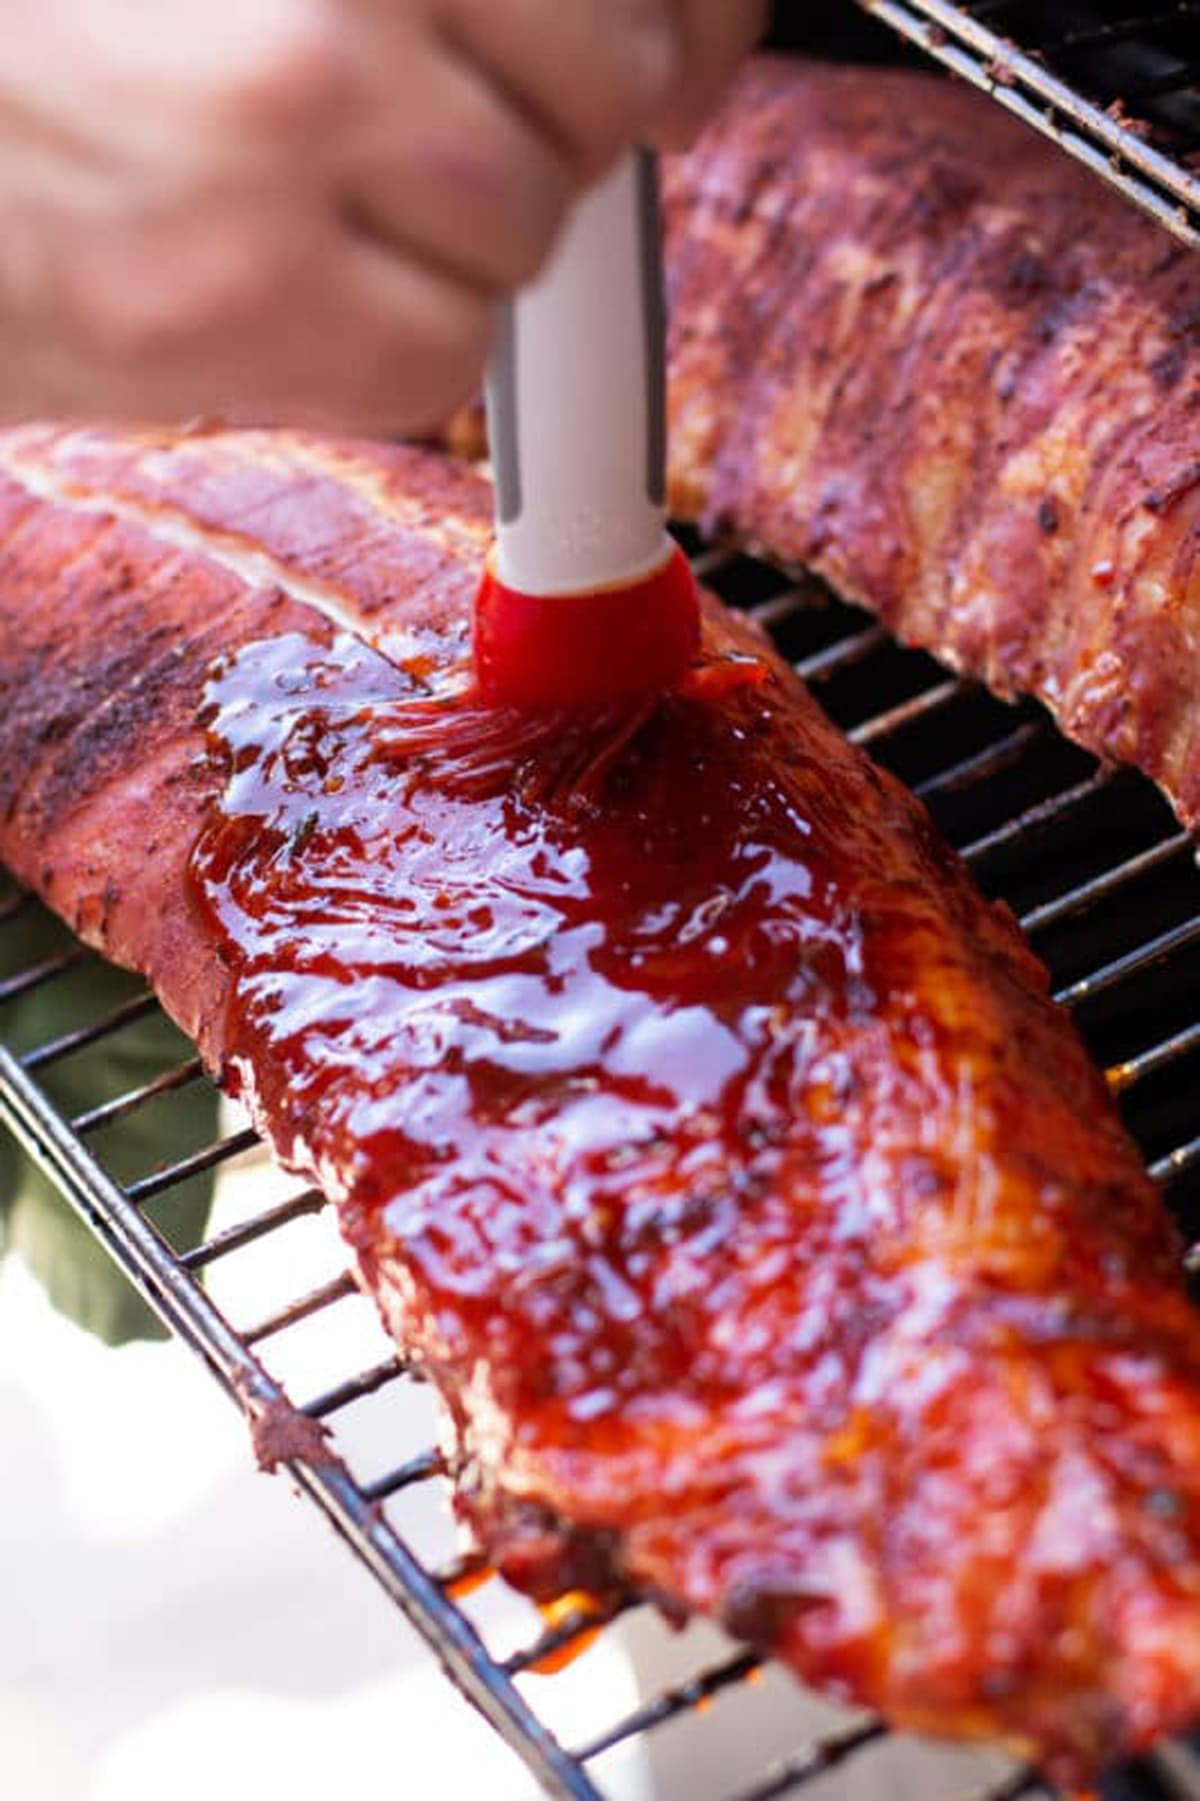 Basting BBQ sauce on a slab of ribs in the smoker.